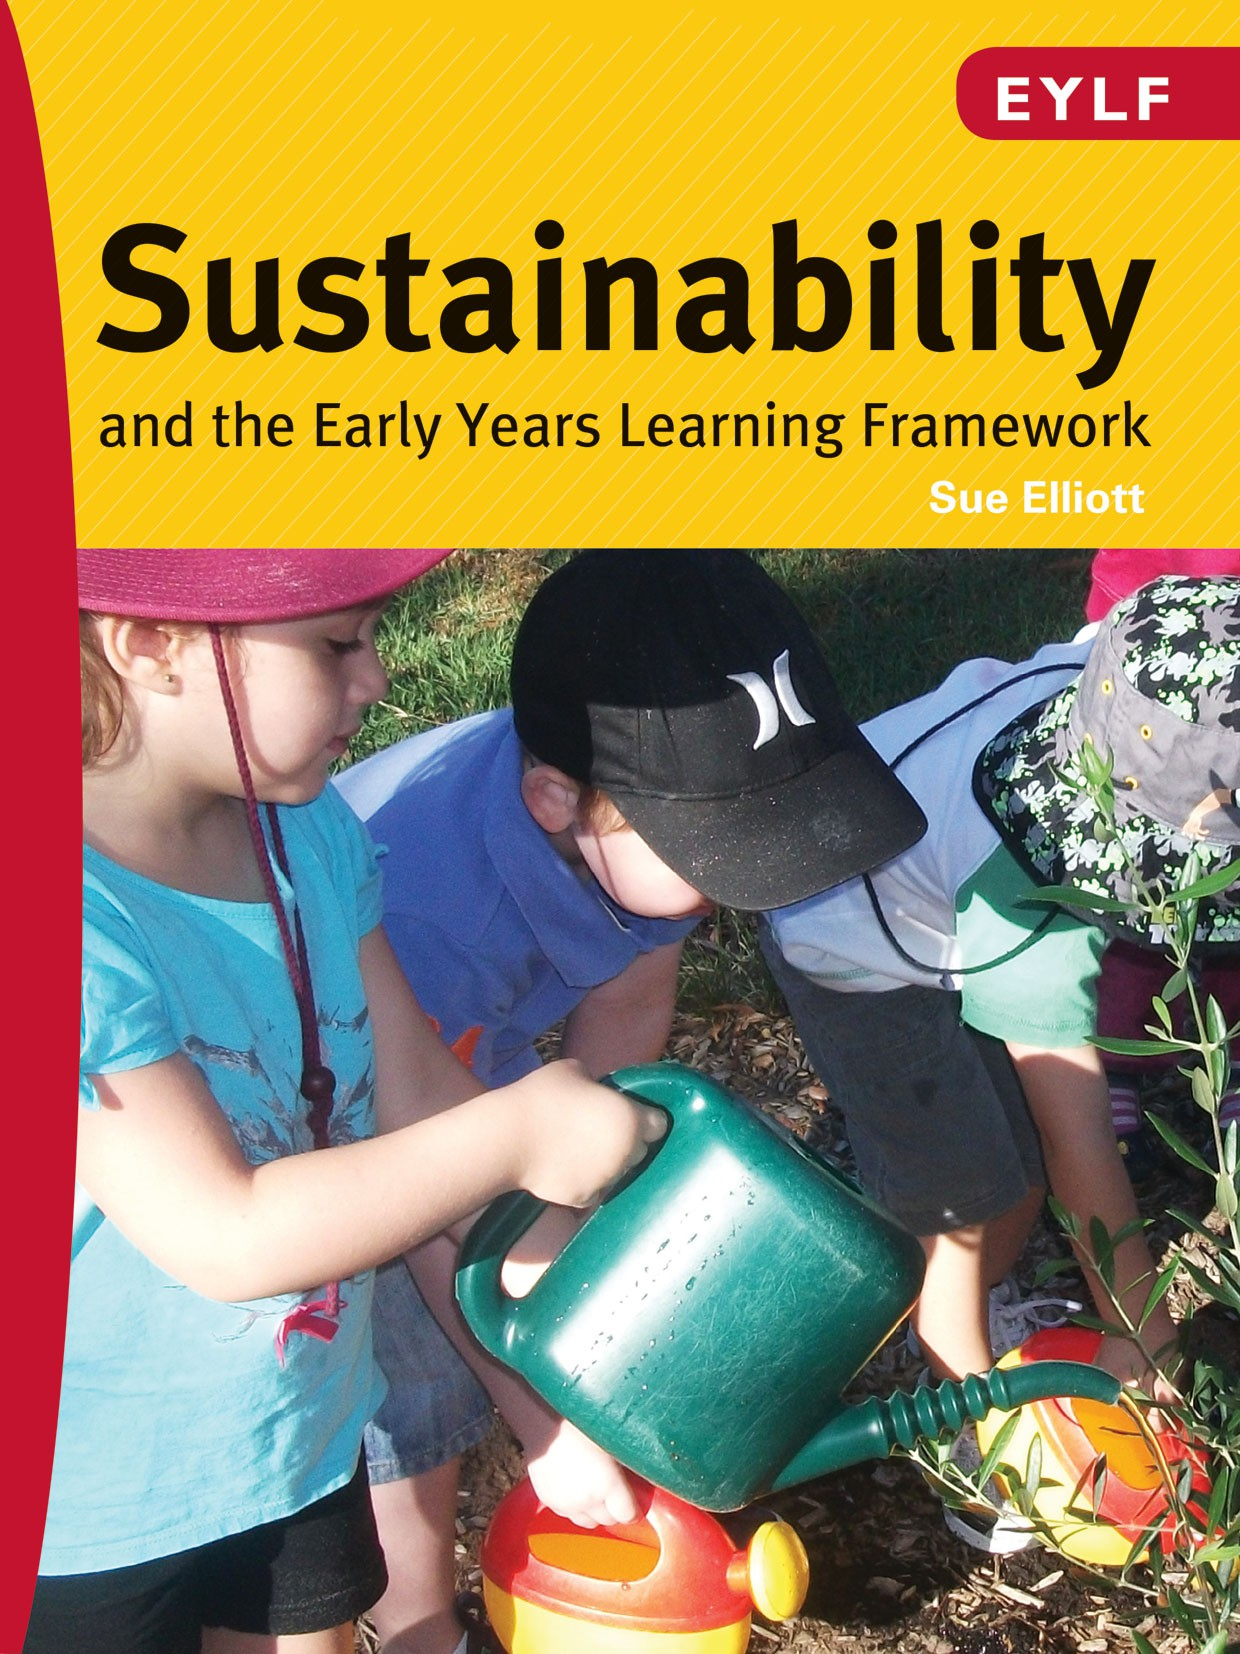 Sustainability and the EYLF